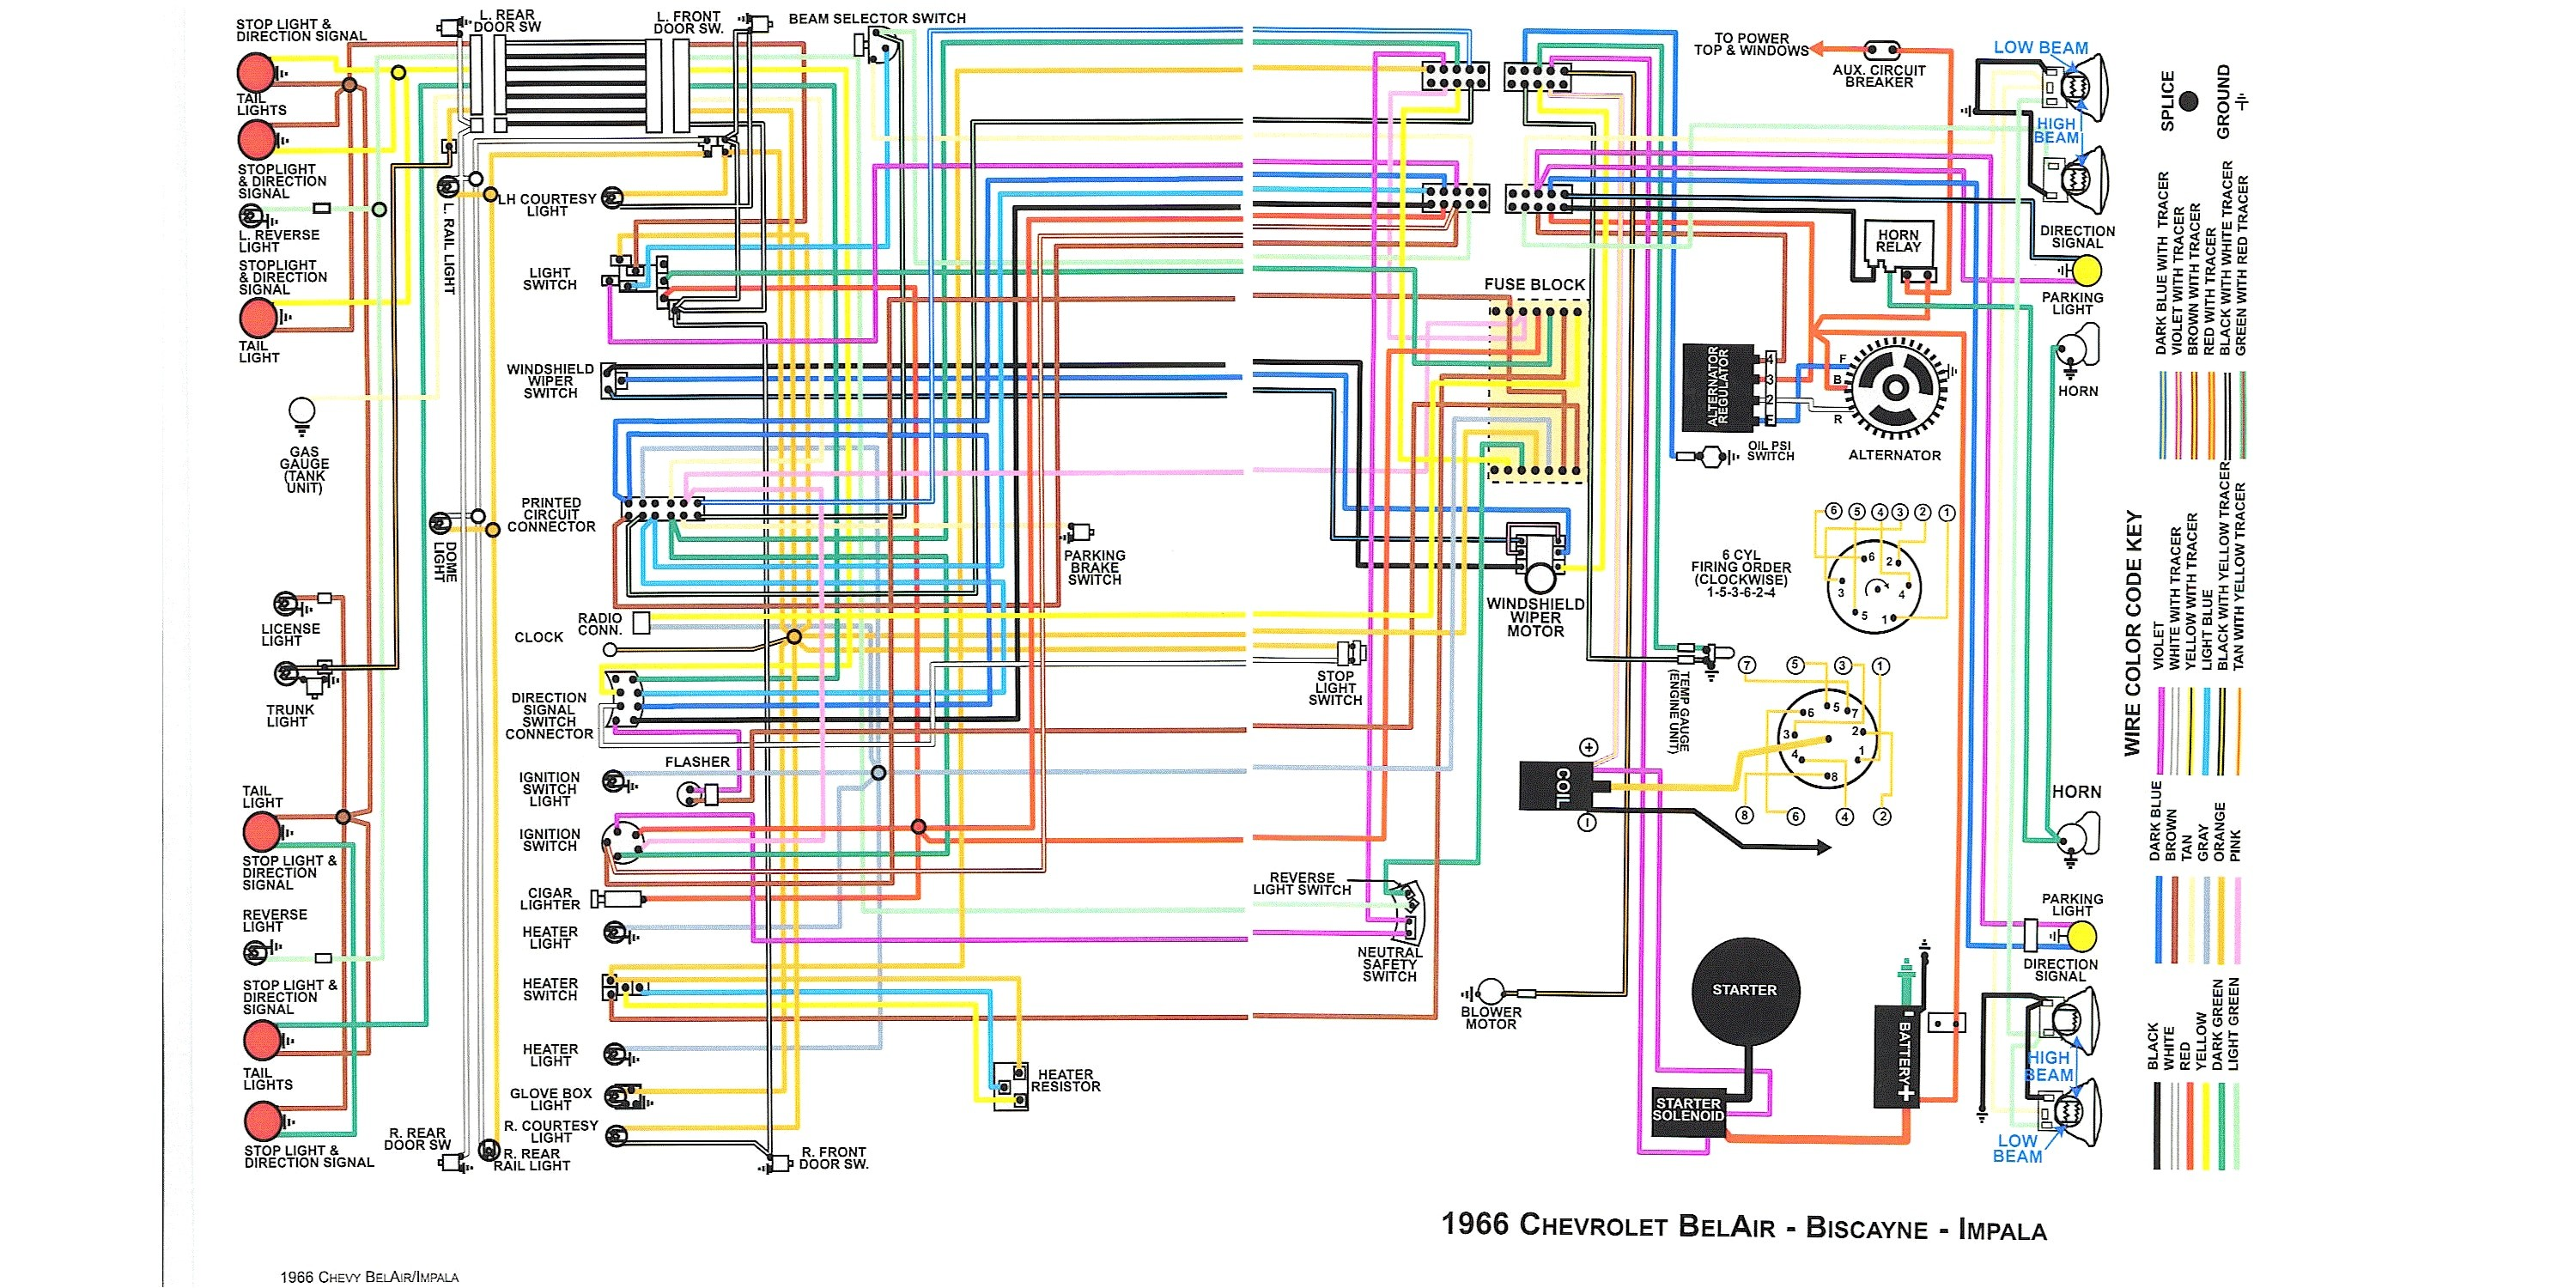 1970 Camaro Wiring Diagram from static-cdn.imageservice.cloud